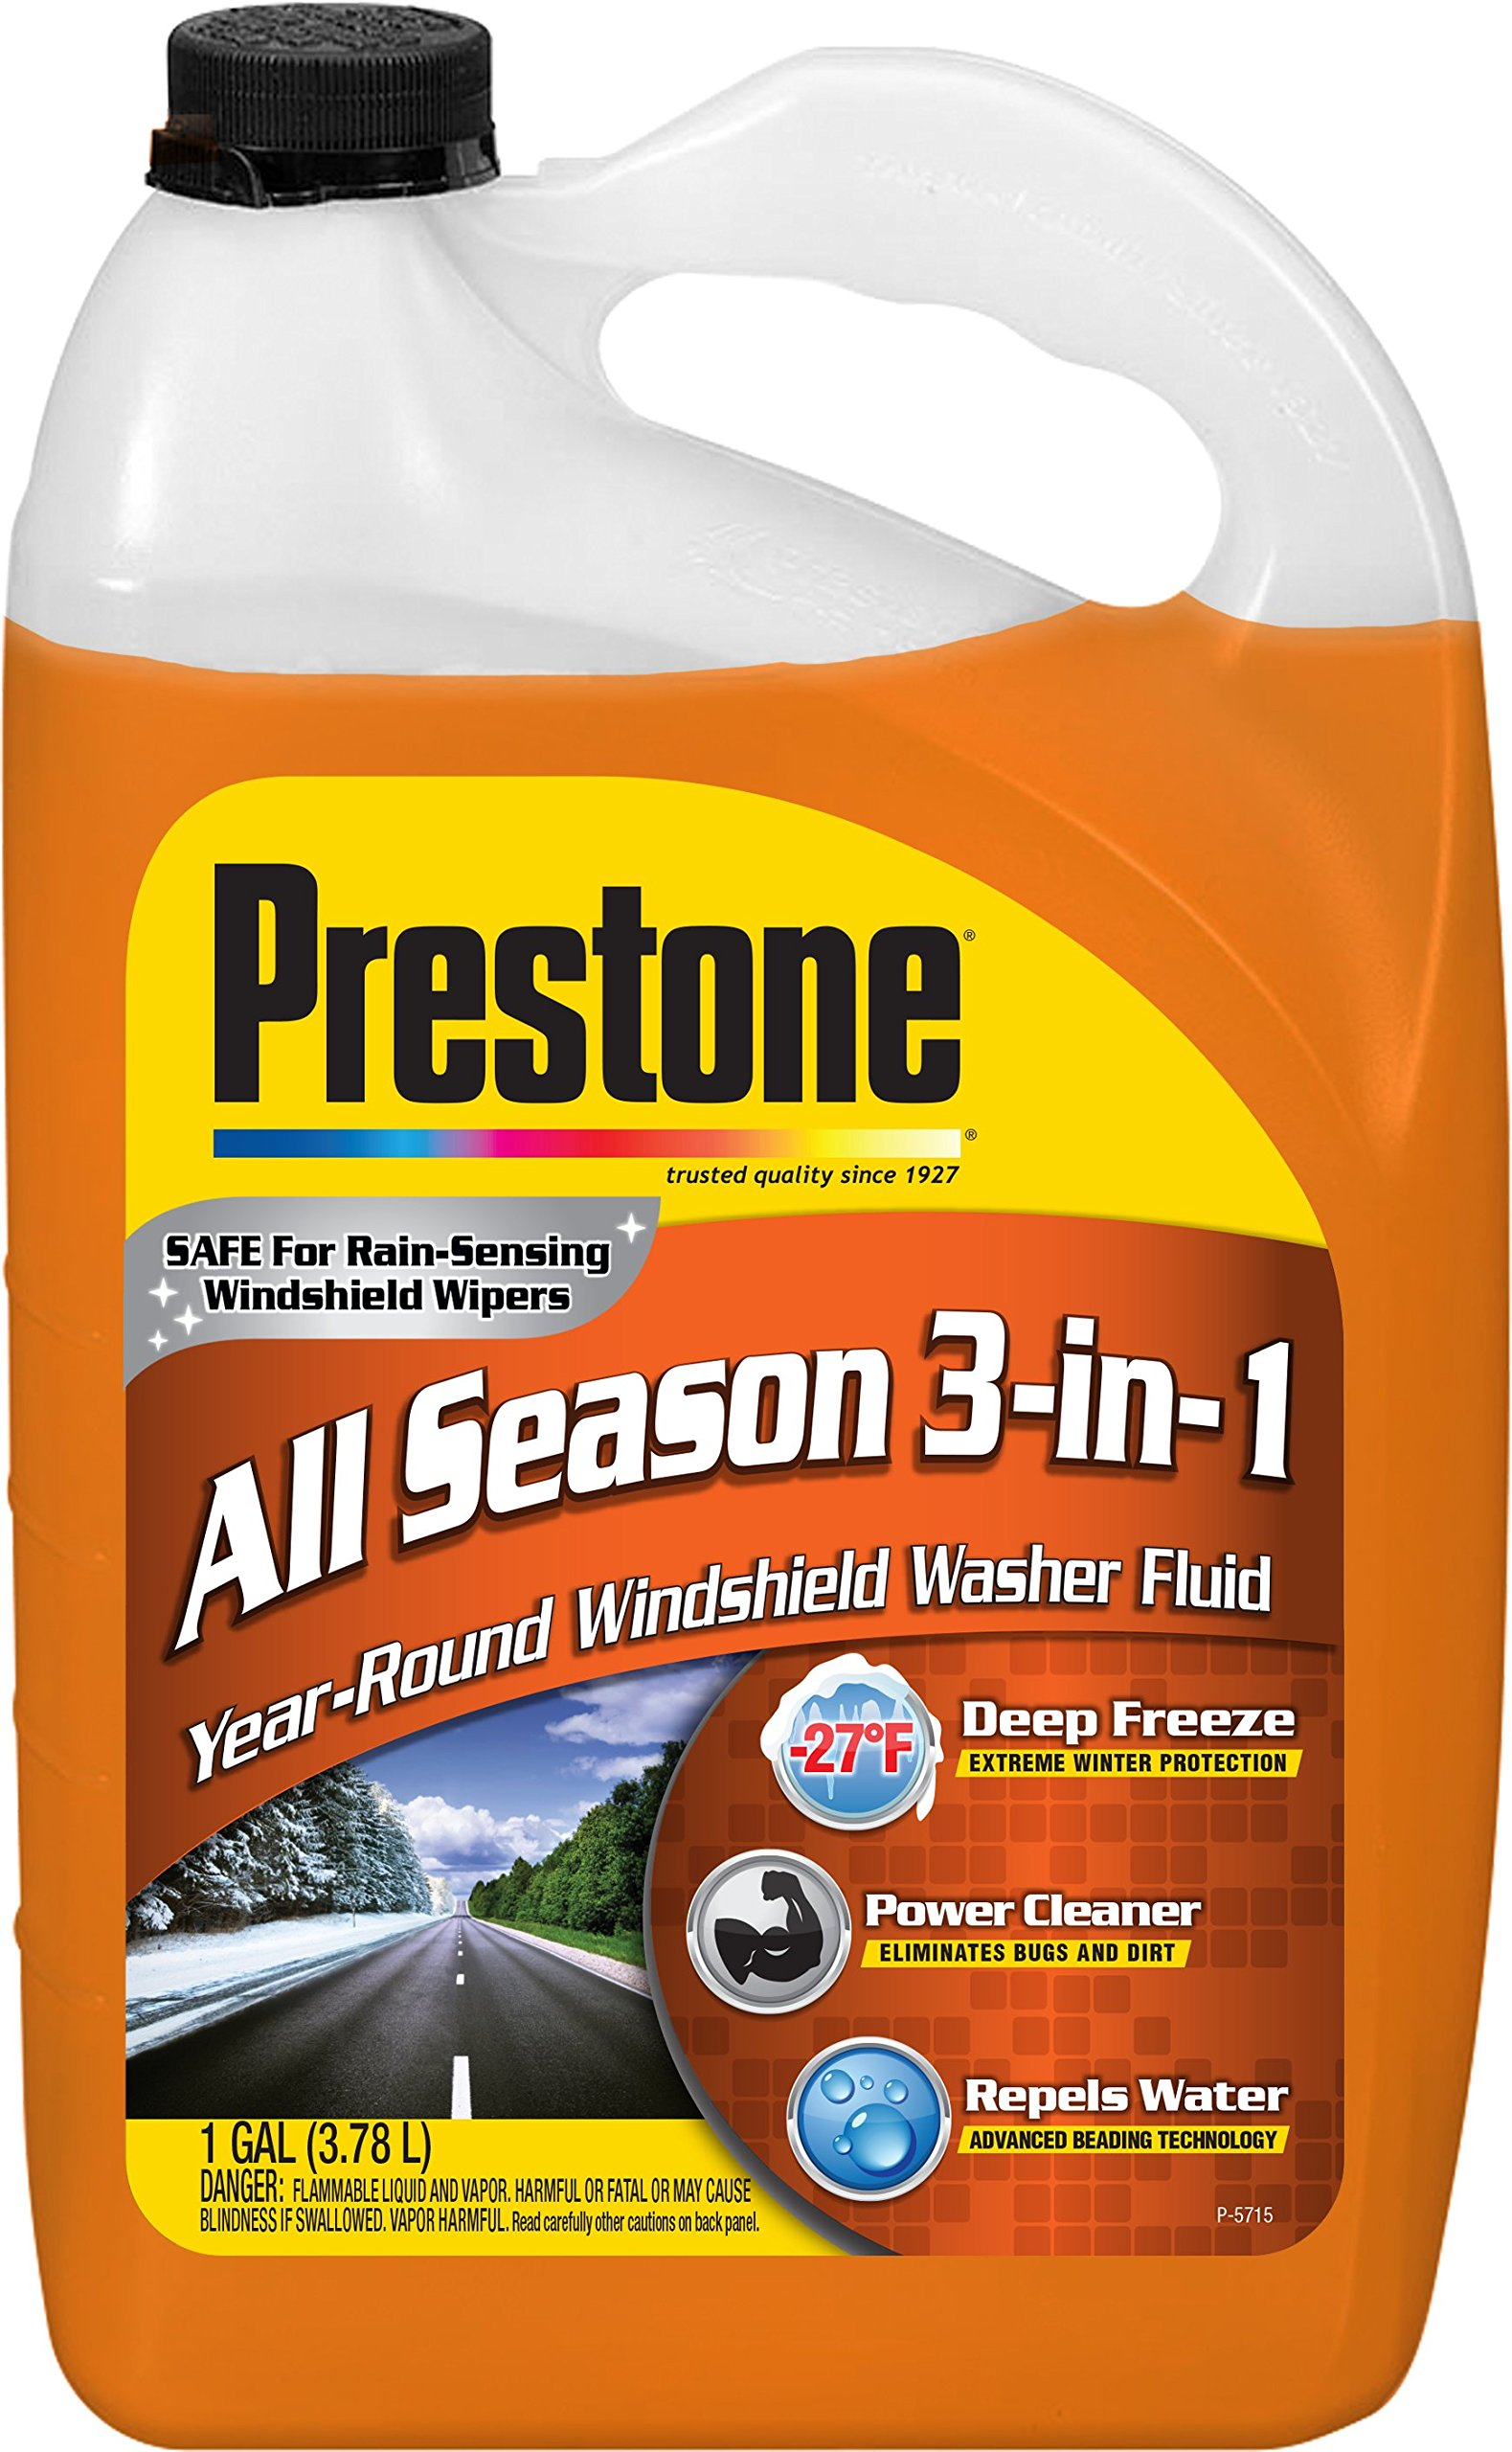 Prestone AS658-6PK Deluxe 3-in-1 Windshield Washer Fluid, 1 Gallon (Pack of 6)